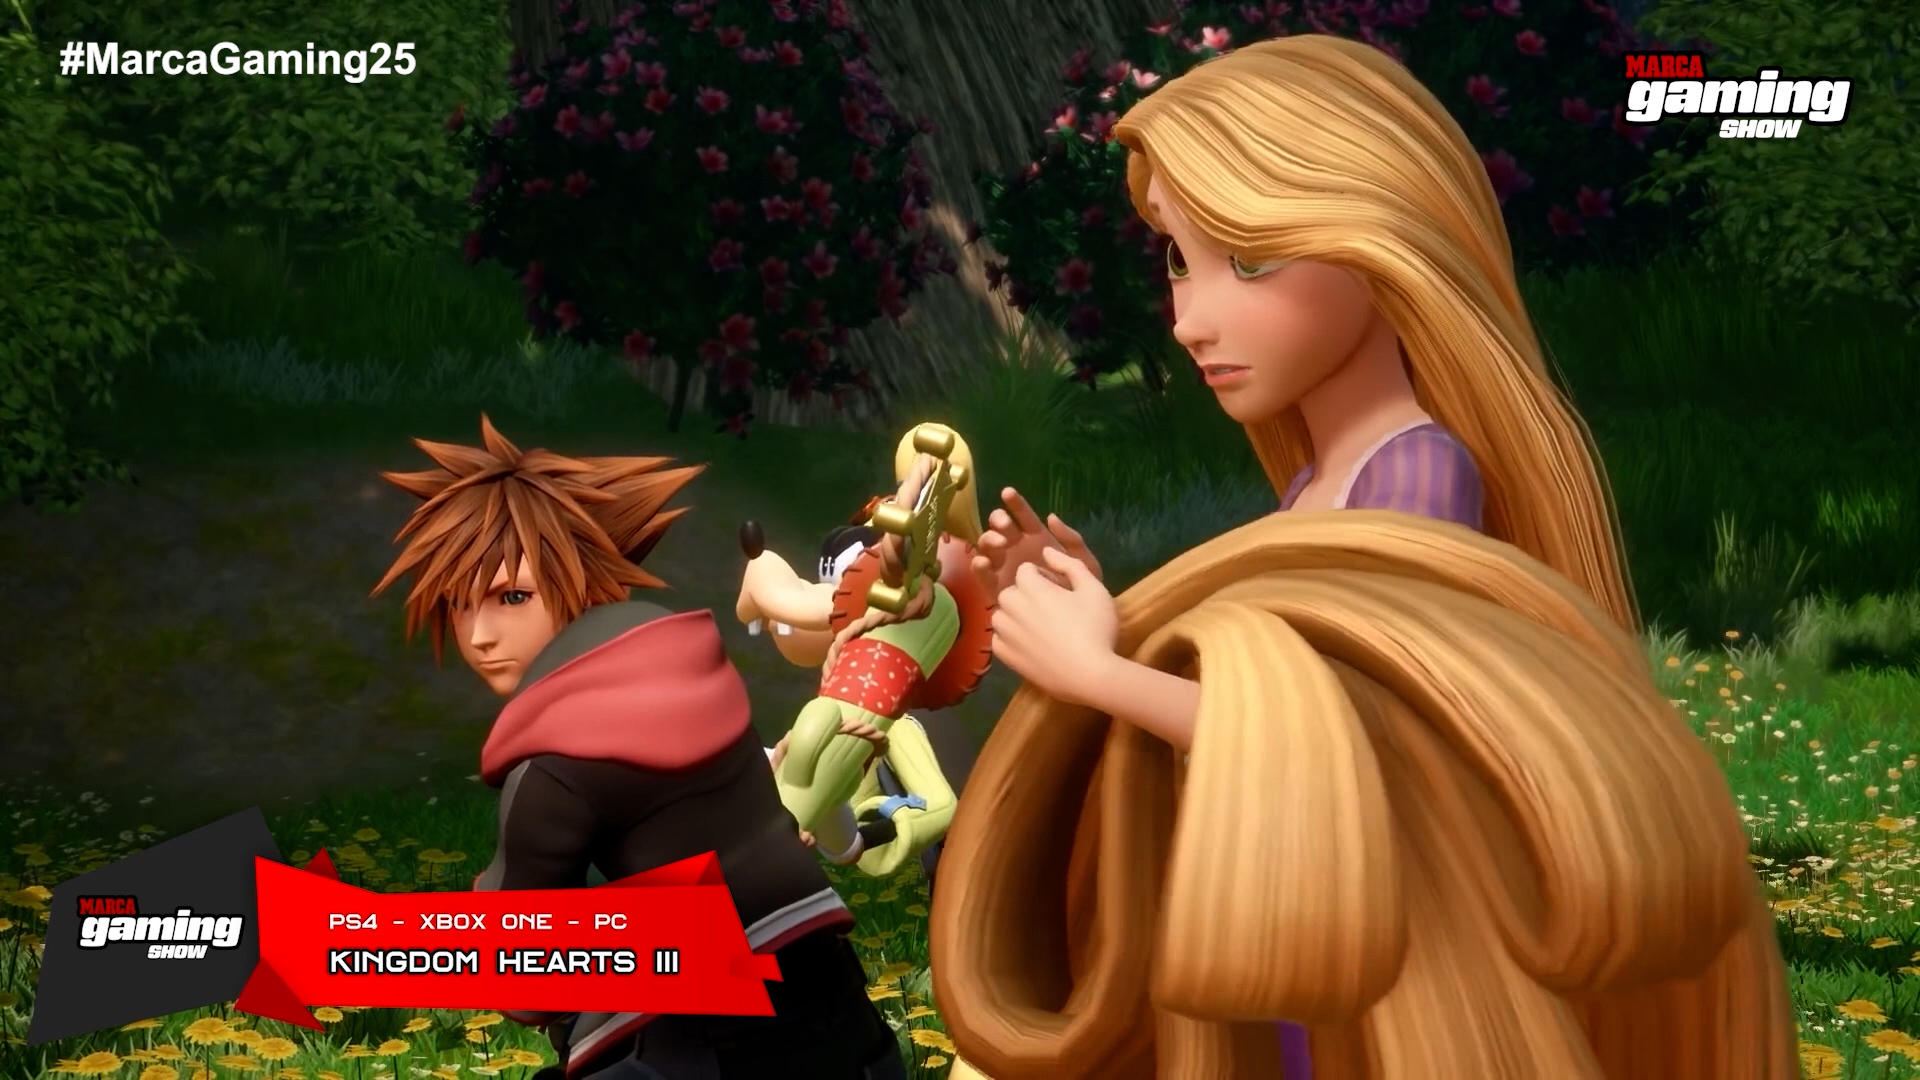 Kingdom Hearts III (PC)